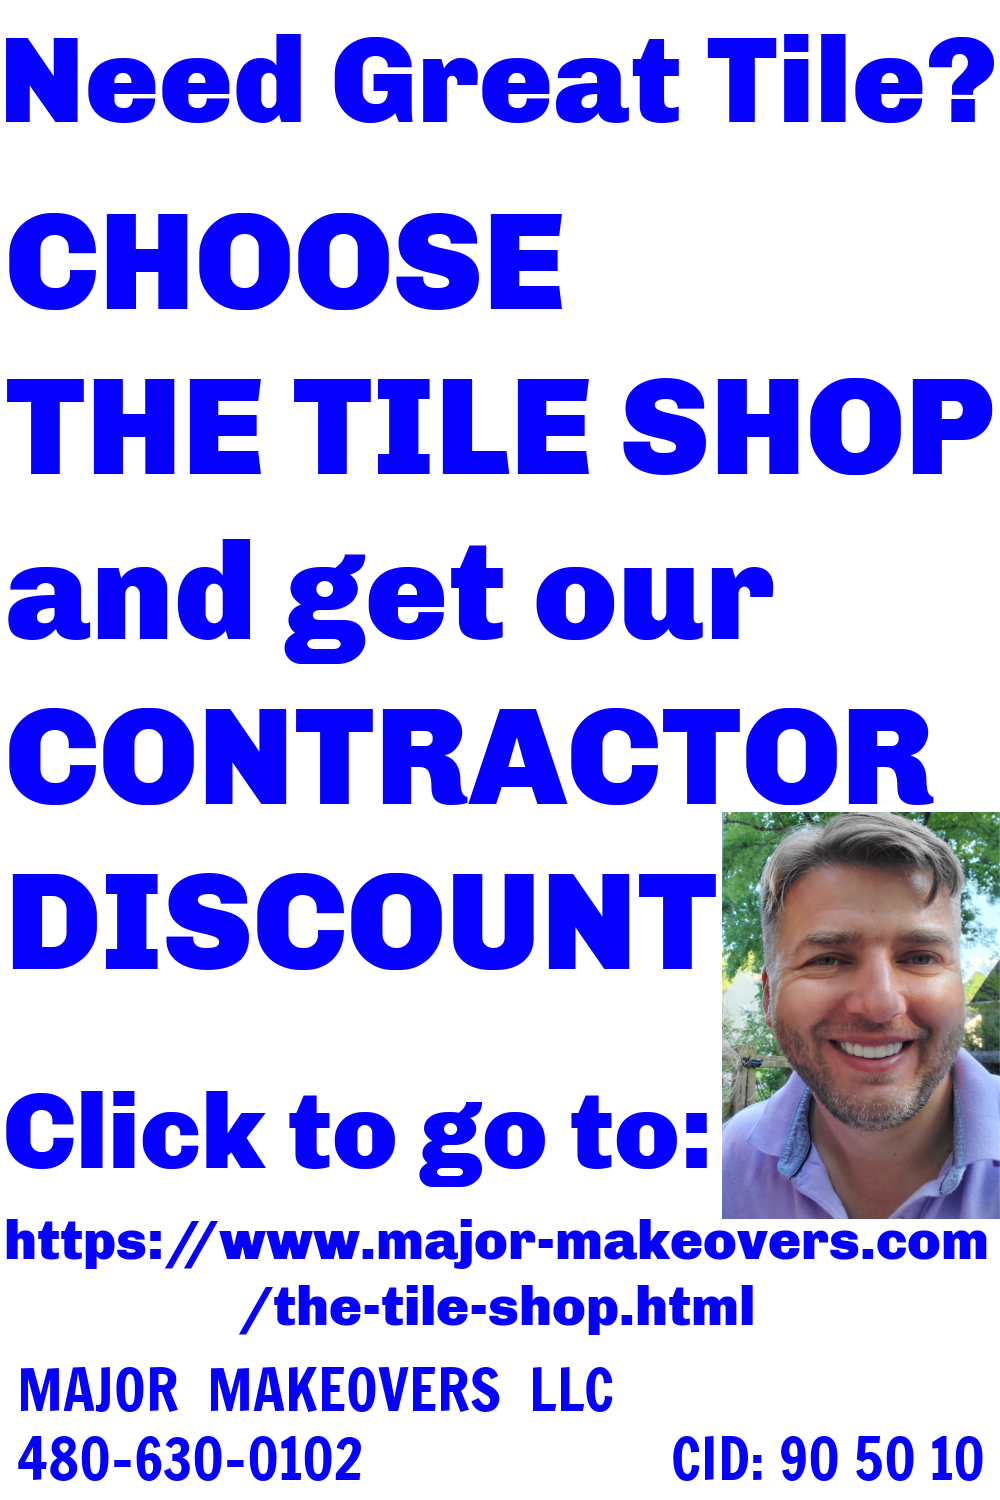 If you need great tile, choose The Tile Shop and get our contractor discount at this link:  https://www.major-makeovers.com/the-tile-shop.html